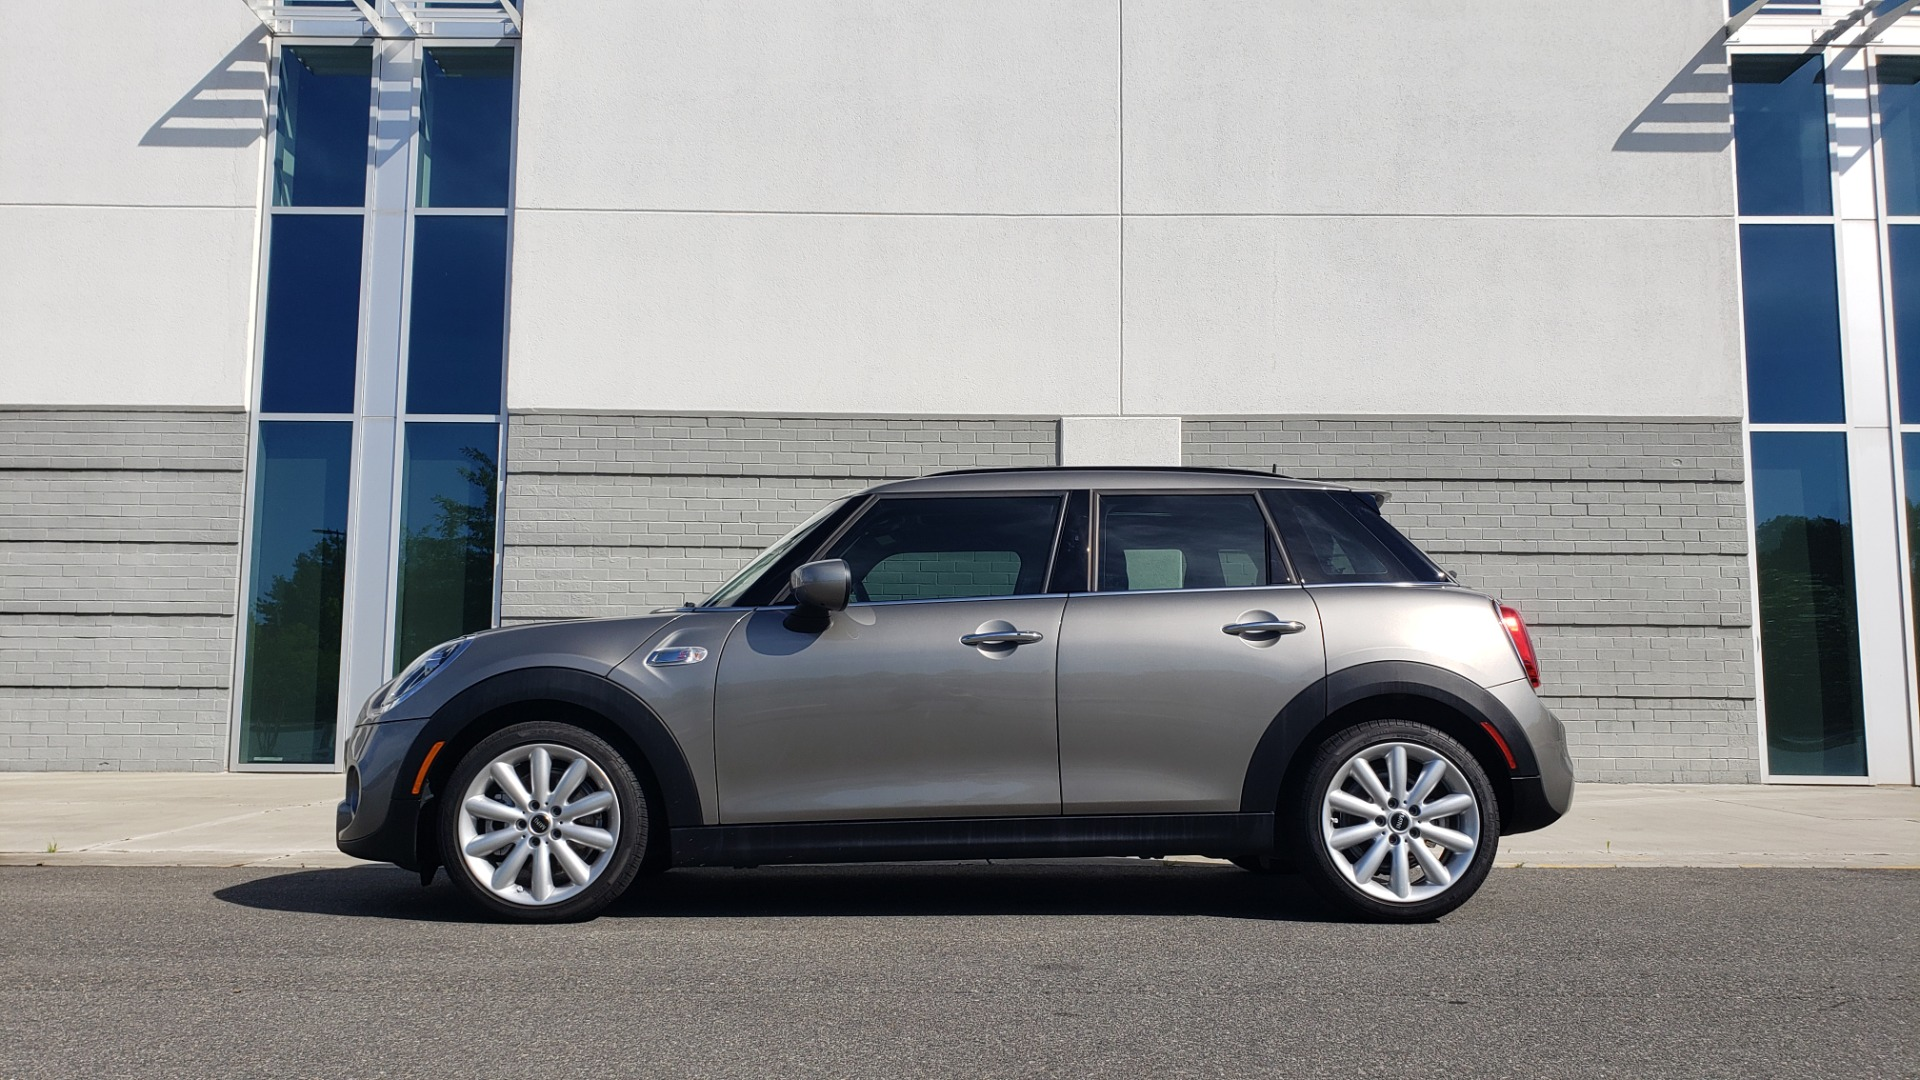 Used 2020 MINI HARDTOP 4 DOOR COOPER S / NAV / SUNROOF / AUTO / H/K SND / REARVIEW for sale $28,495 at Formula Imports in Charlotte NC 28227 4